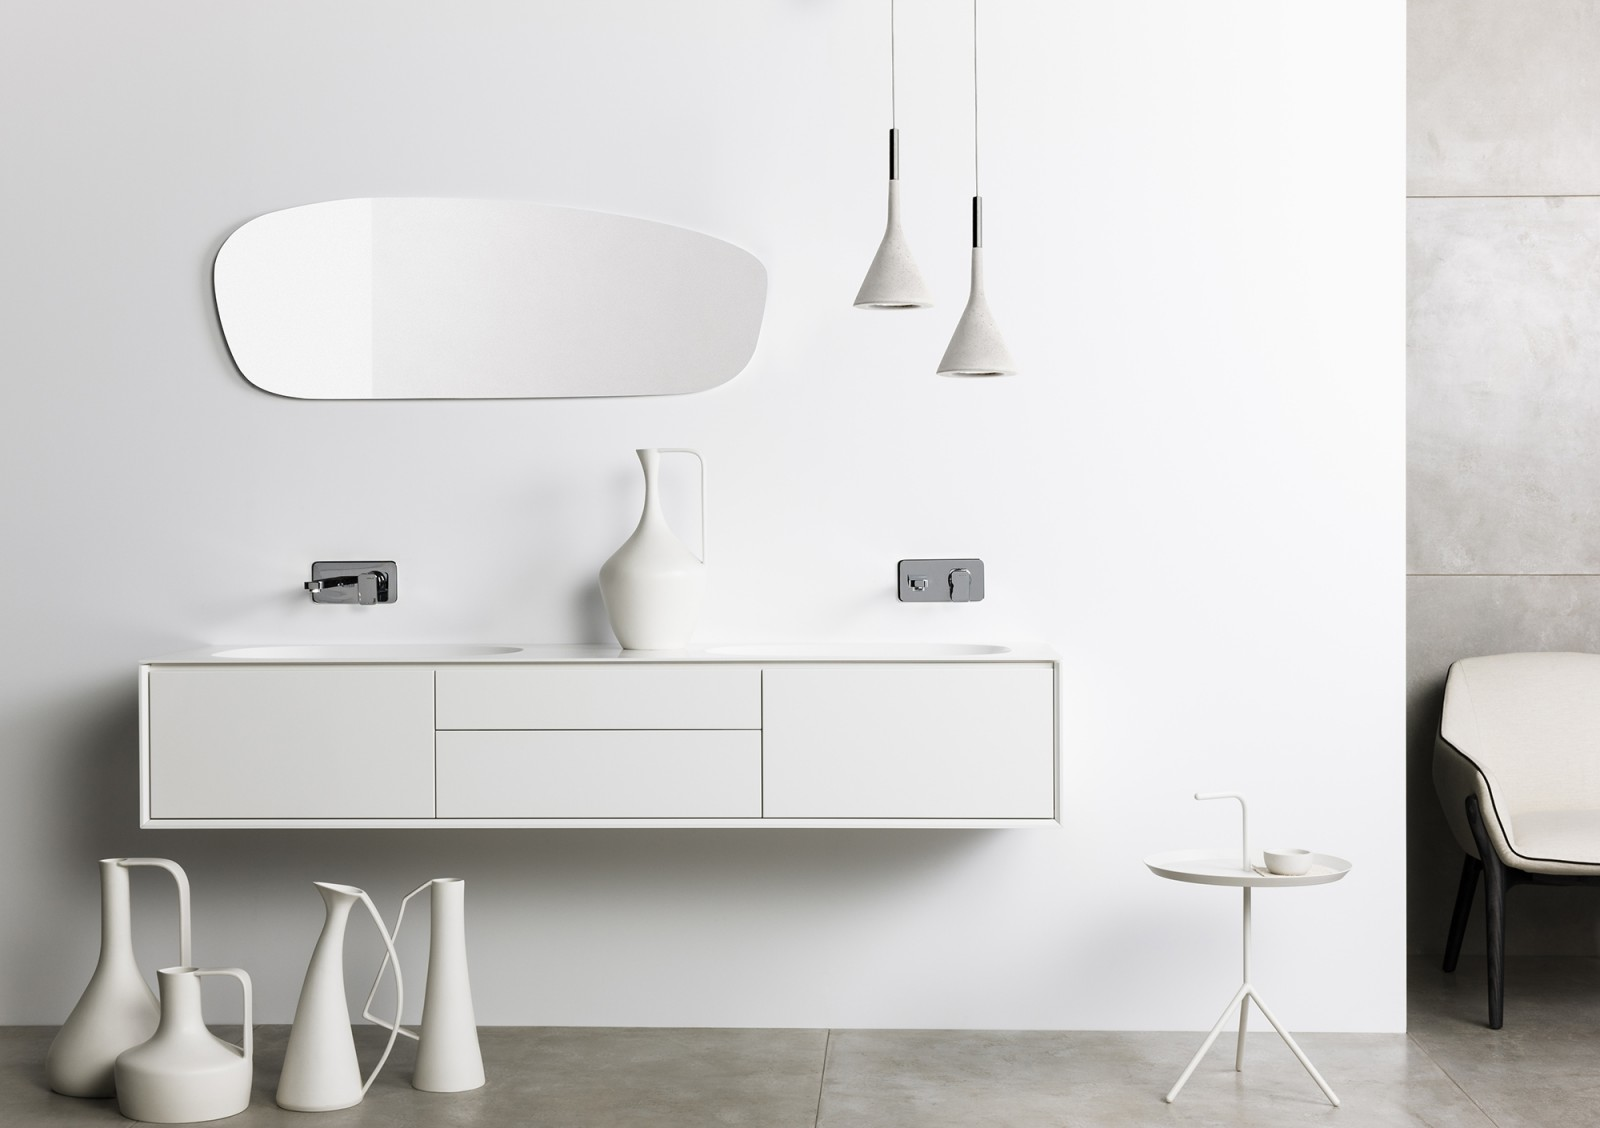 Reece Bathroom Furniture. Designer vanity, vanities designed by Geoff Wormald at Open Sky. Interior photography in studio in Leichhardt. Interior Sydney photographer Michelle Young photography with...